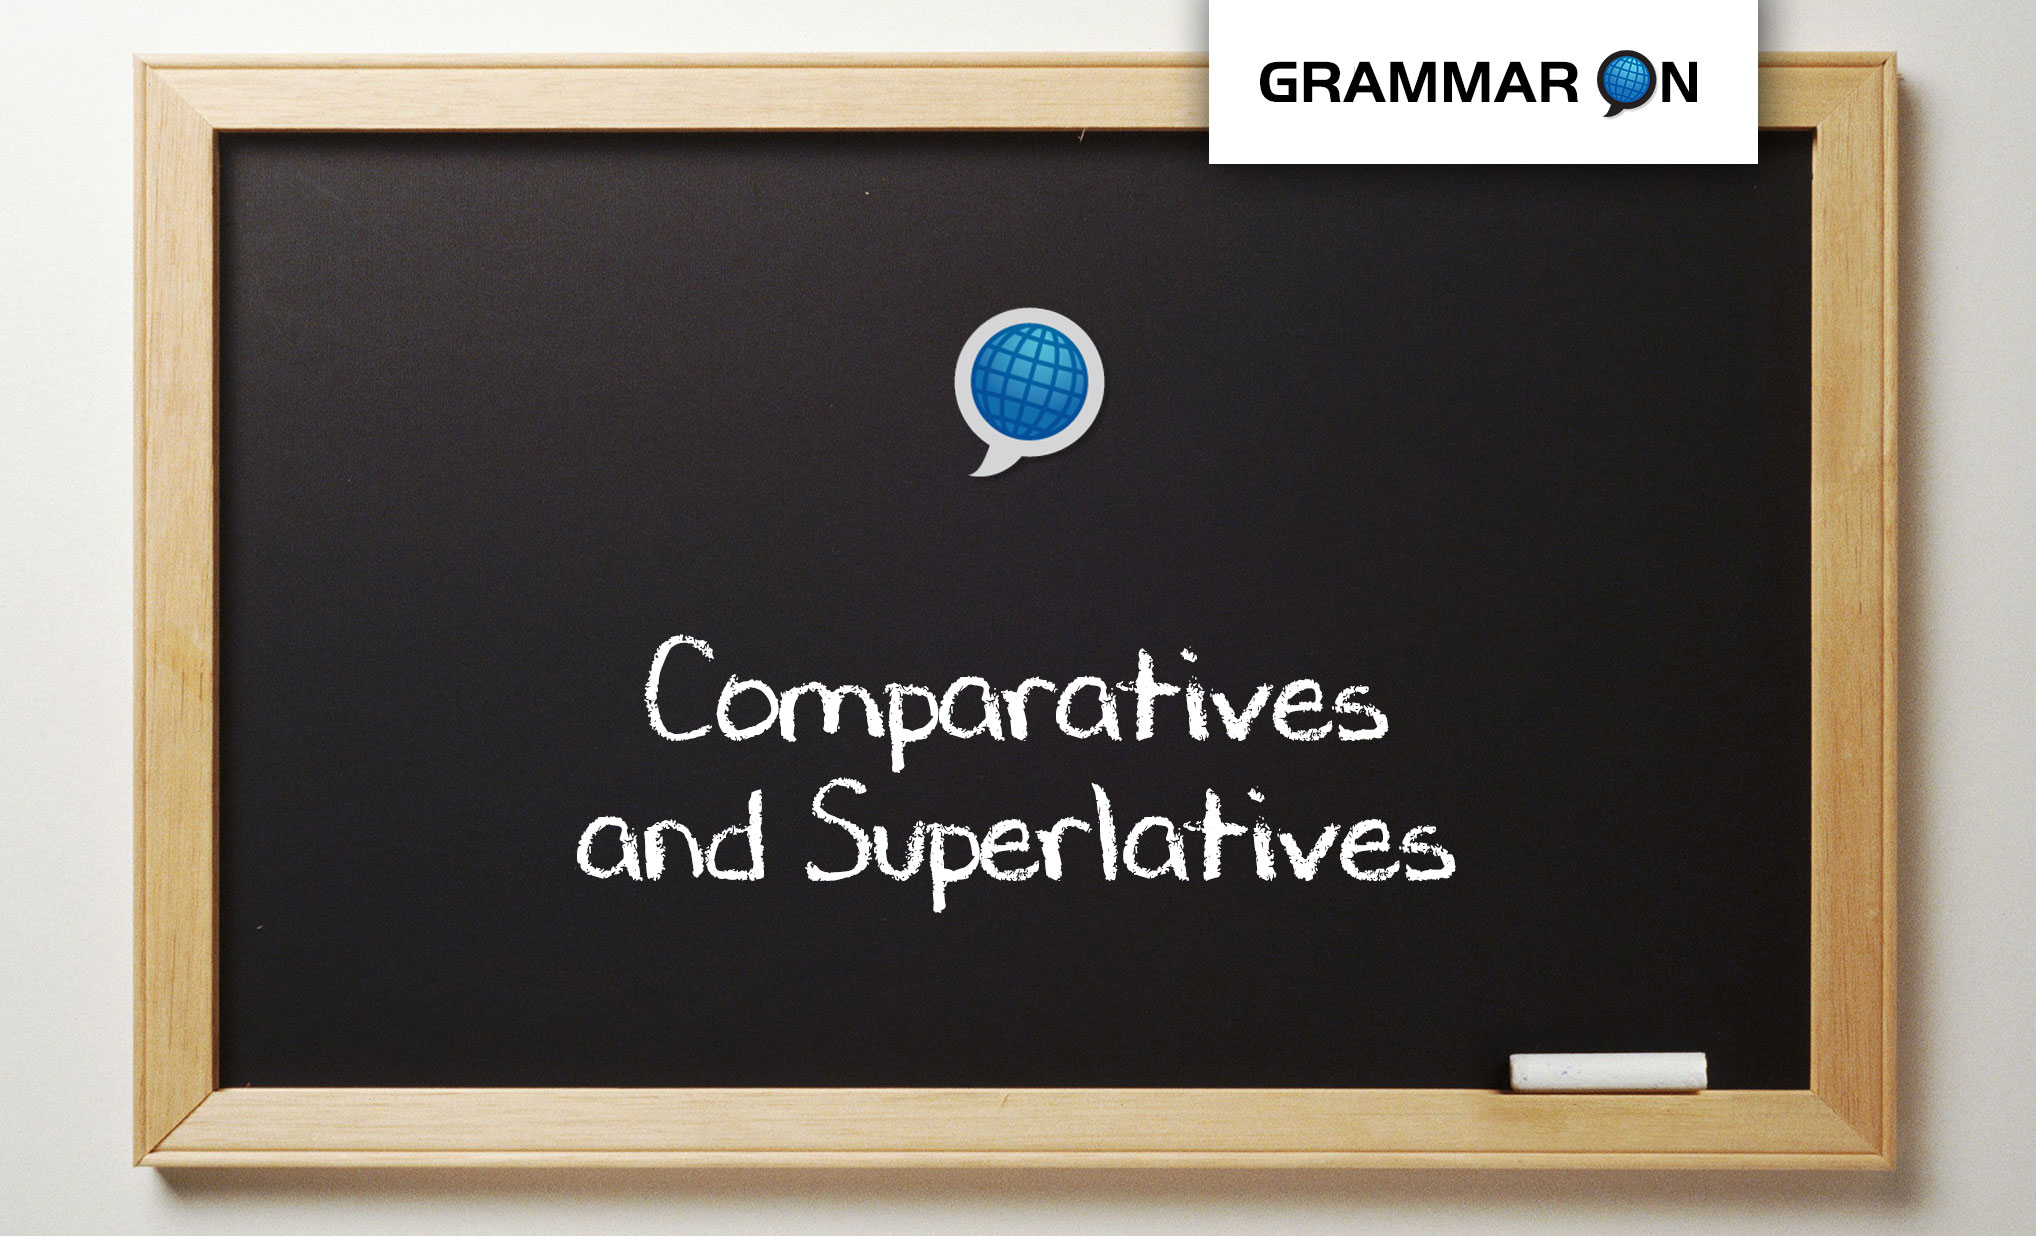 Comparatives and Superlatives in English